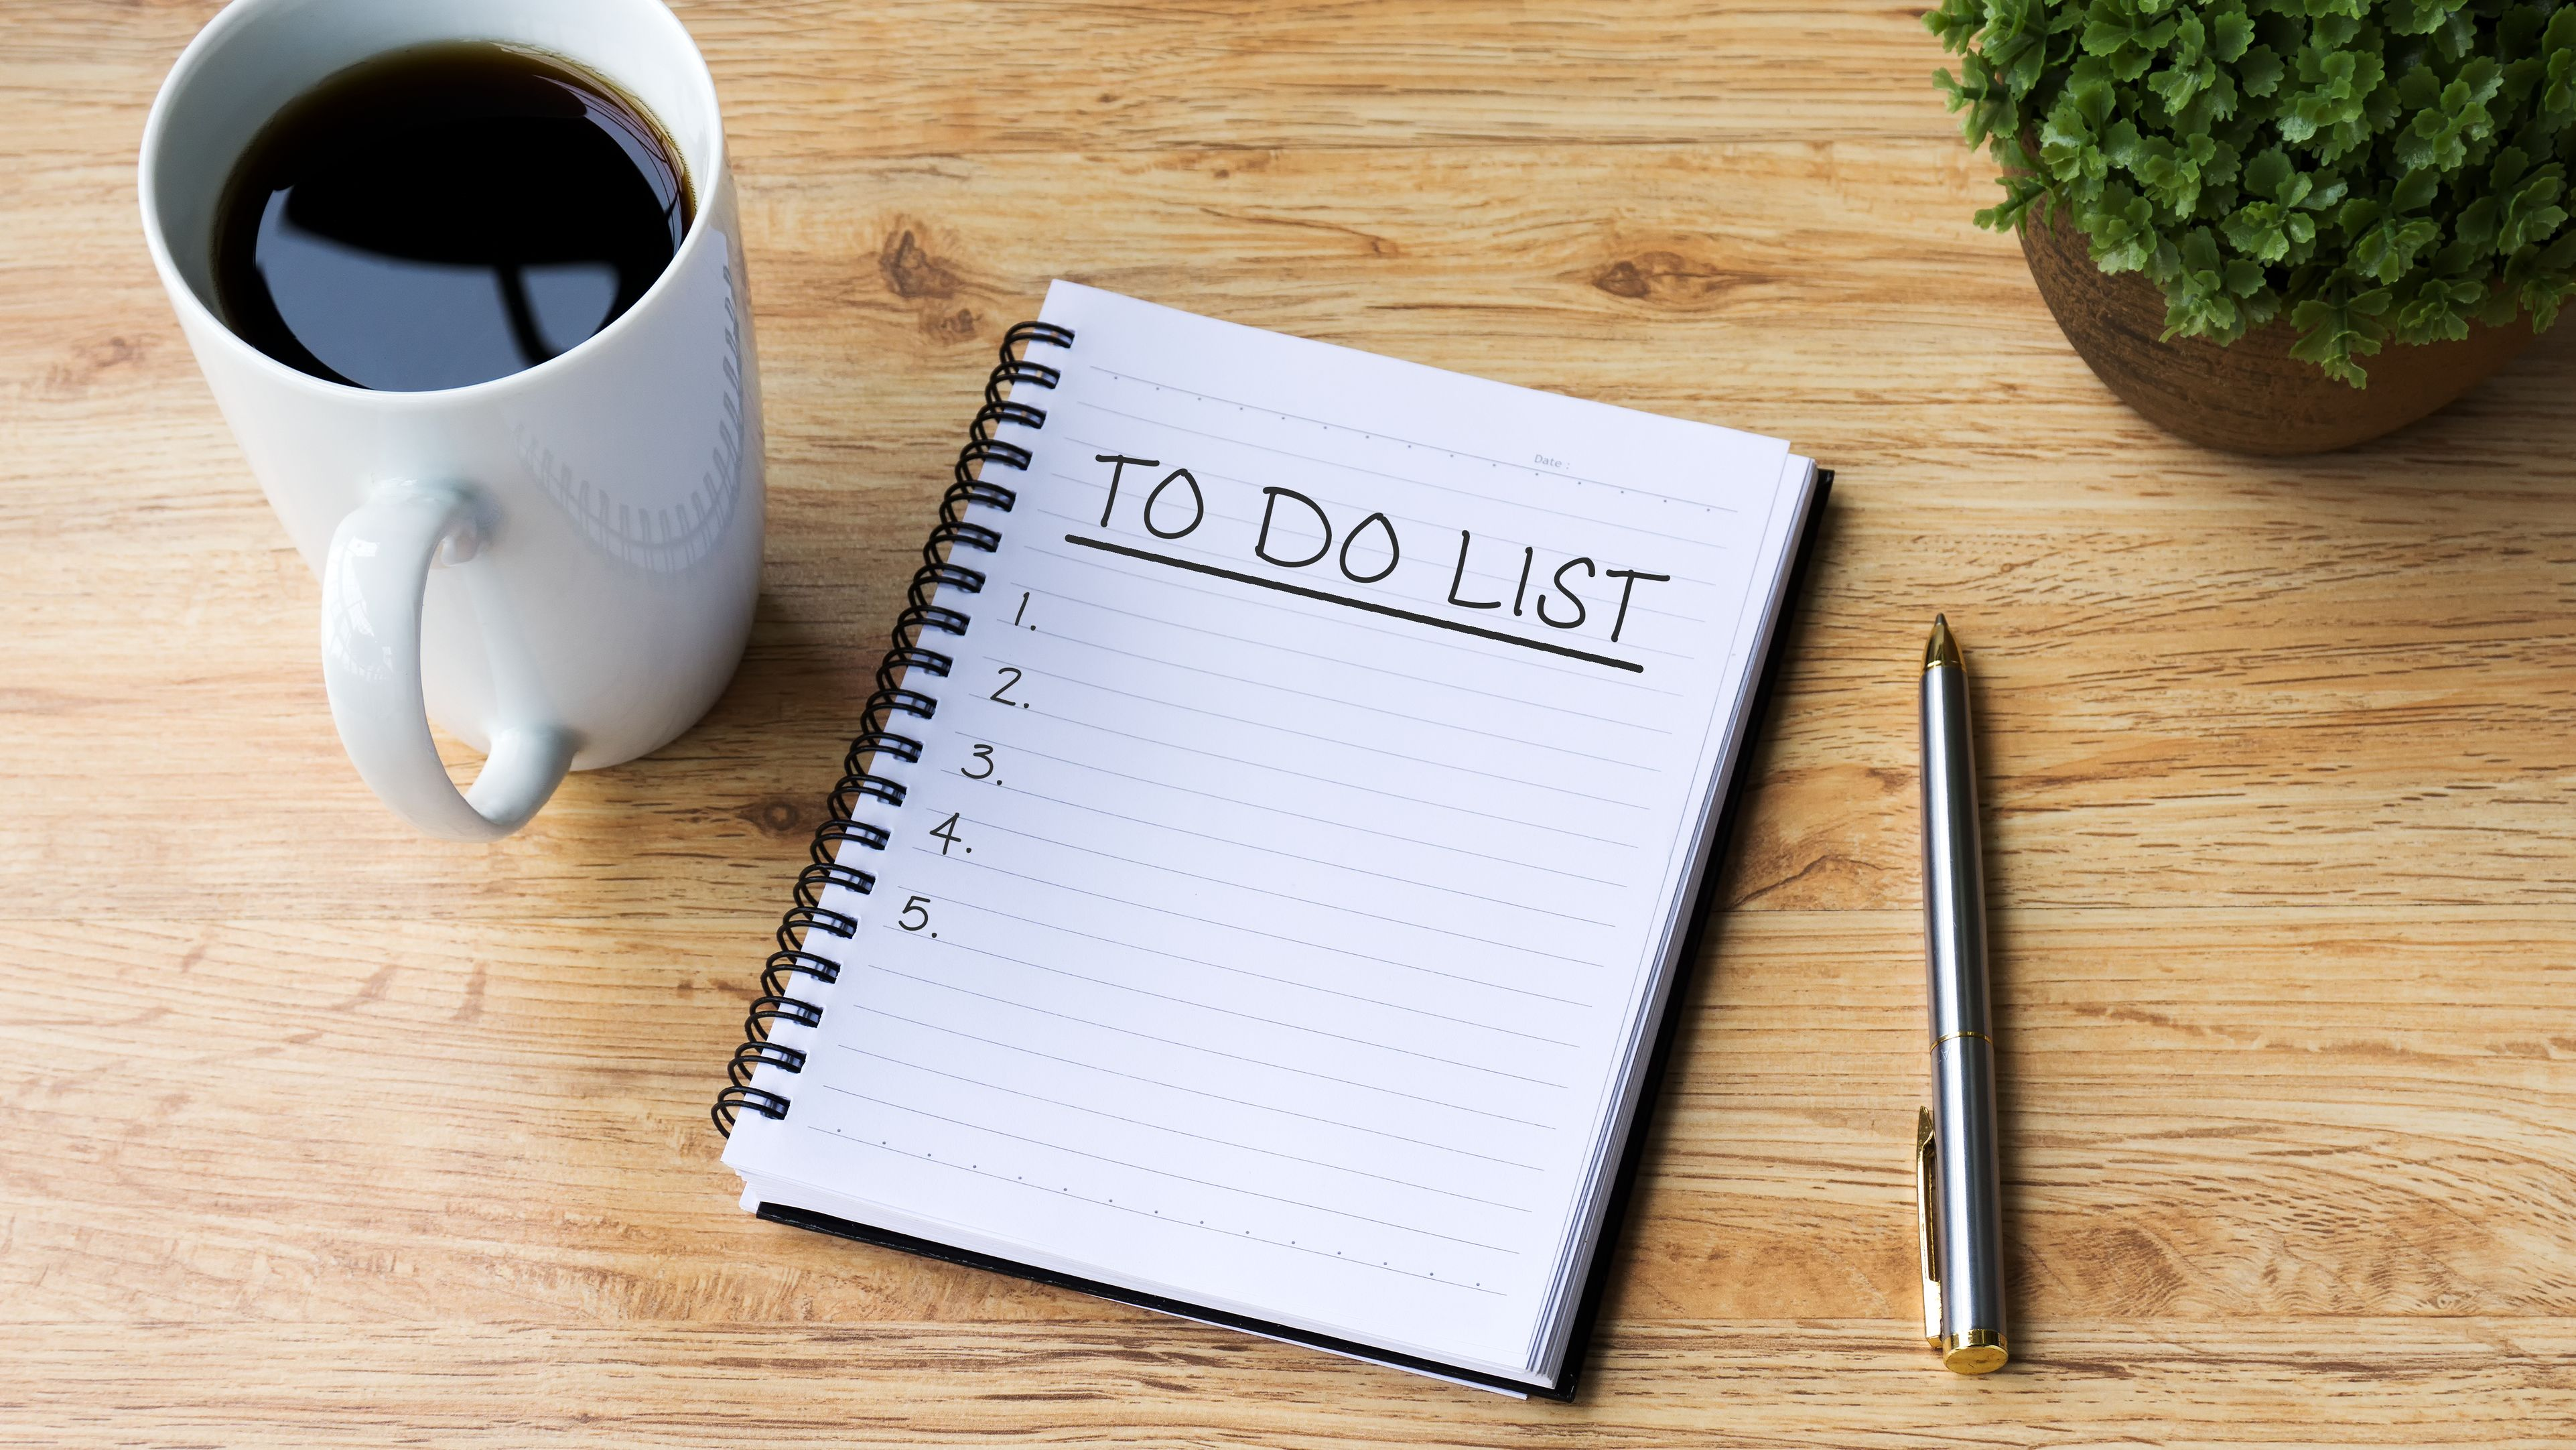 7 Expert-Approved Ways to Write a Better To-Do List | Mental Floss